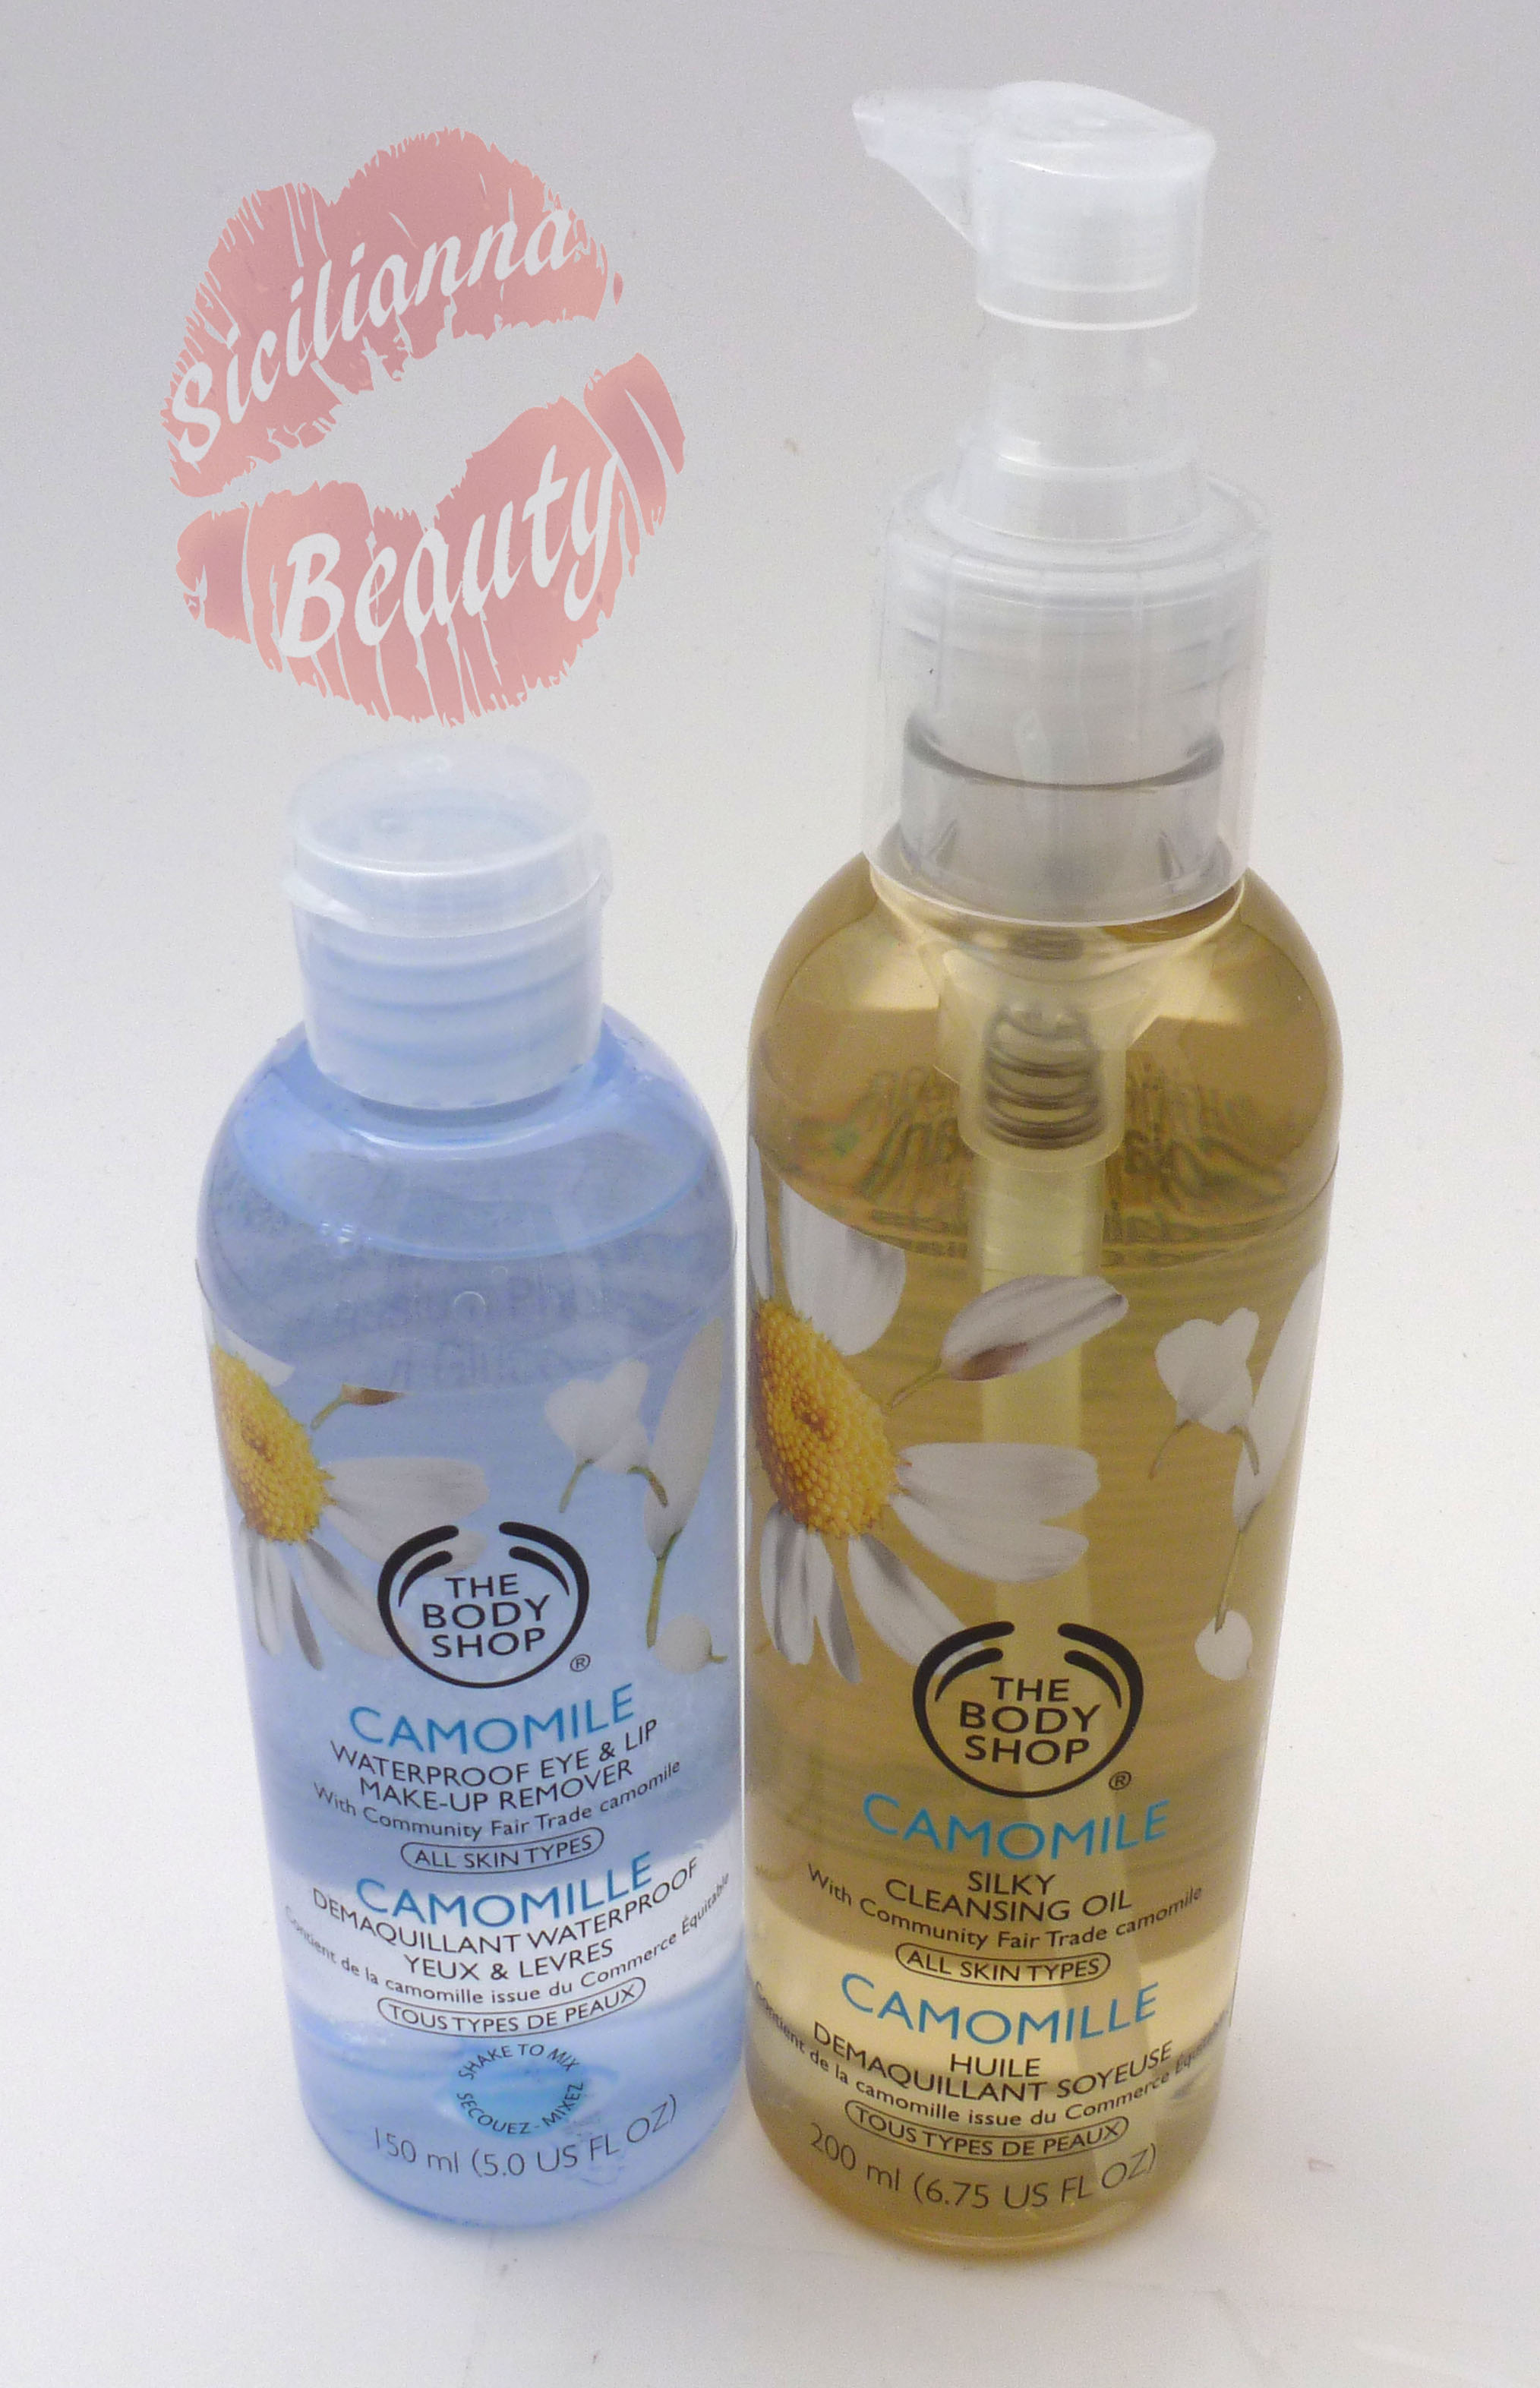 REVIEW: The Body Shop Camomile Eye/Lip Makeup Remover and Camomile Silky Cleansing Oil